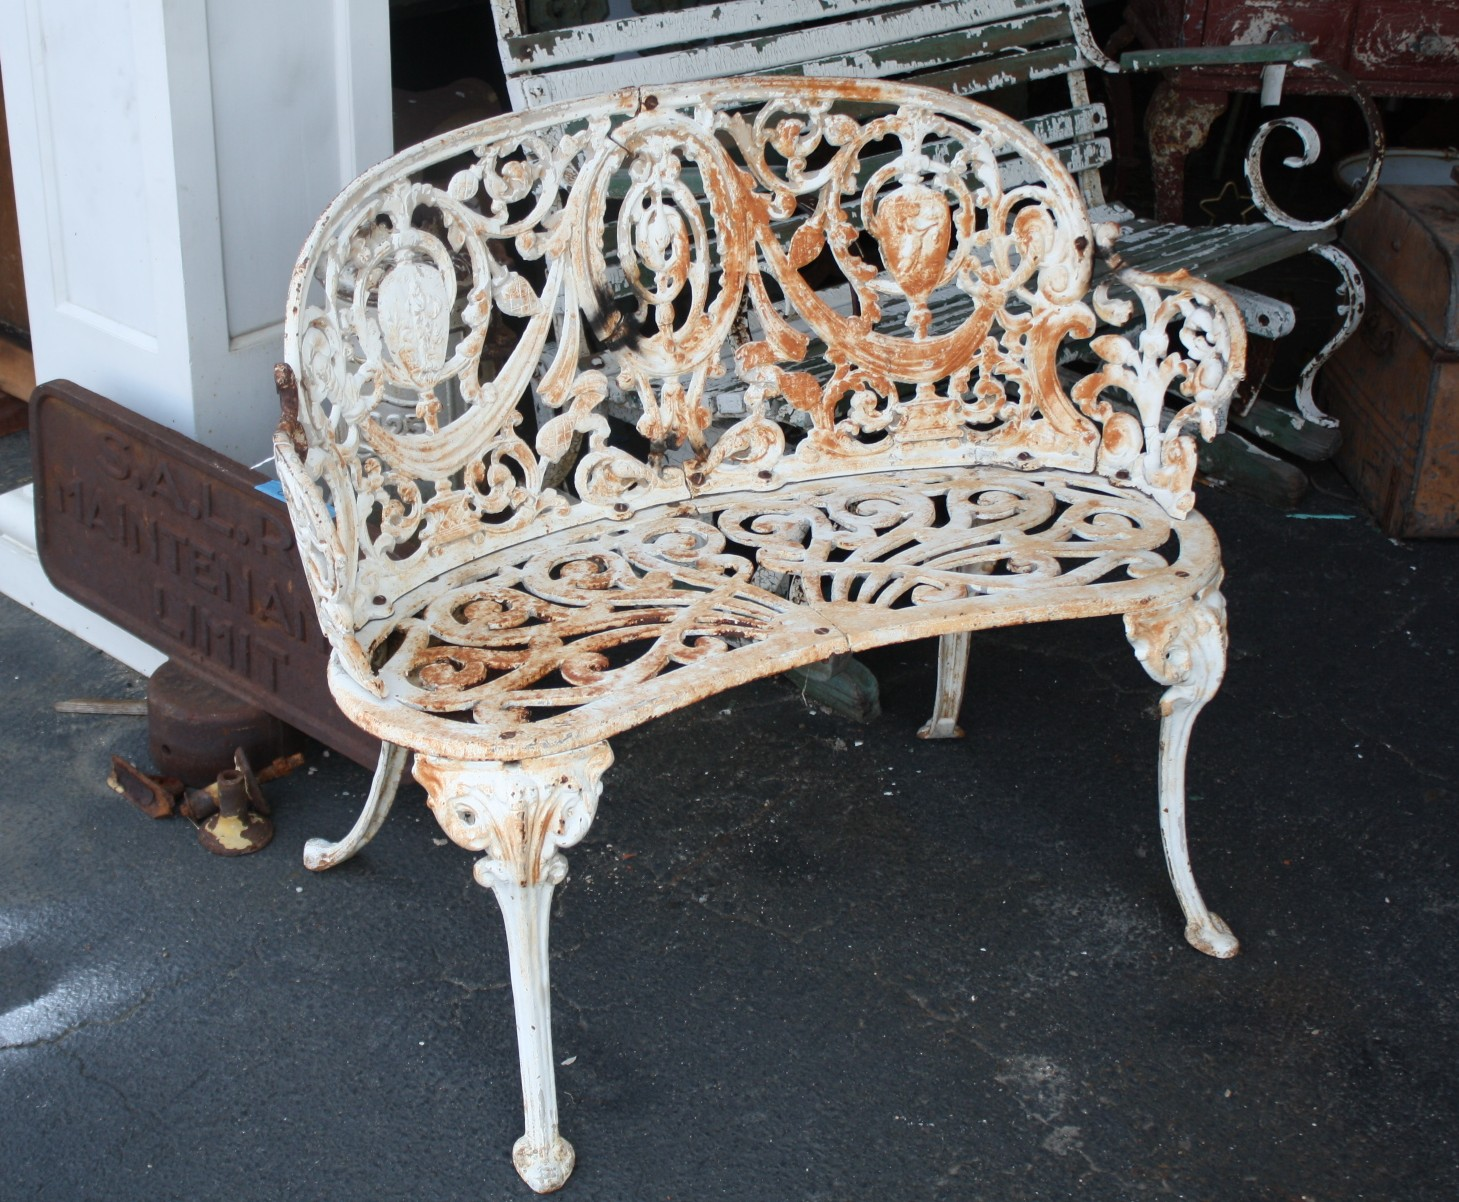 Classifieds antiques antique garden Cast iron garden furniture